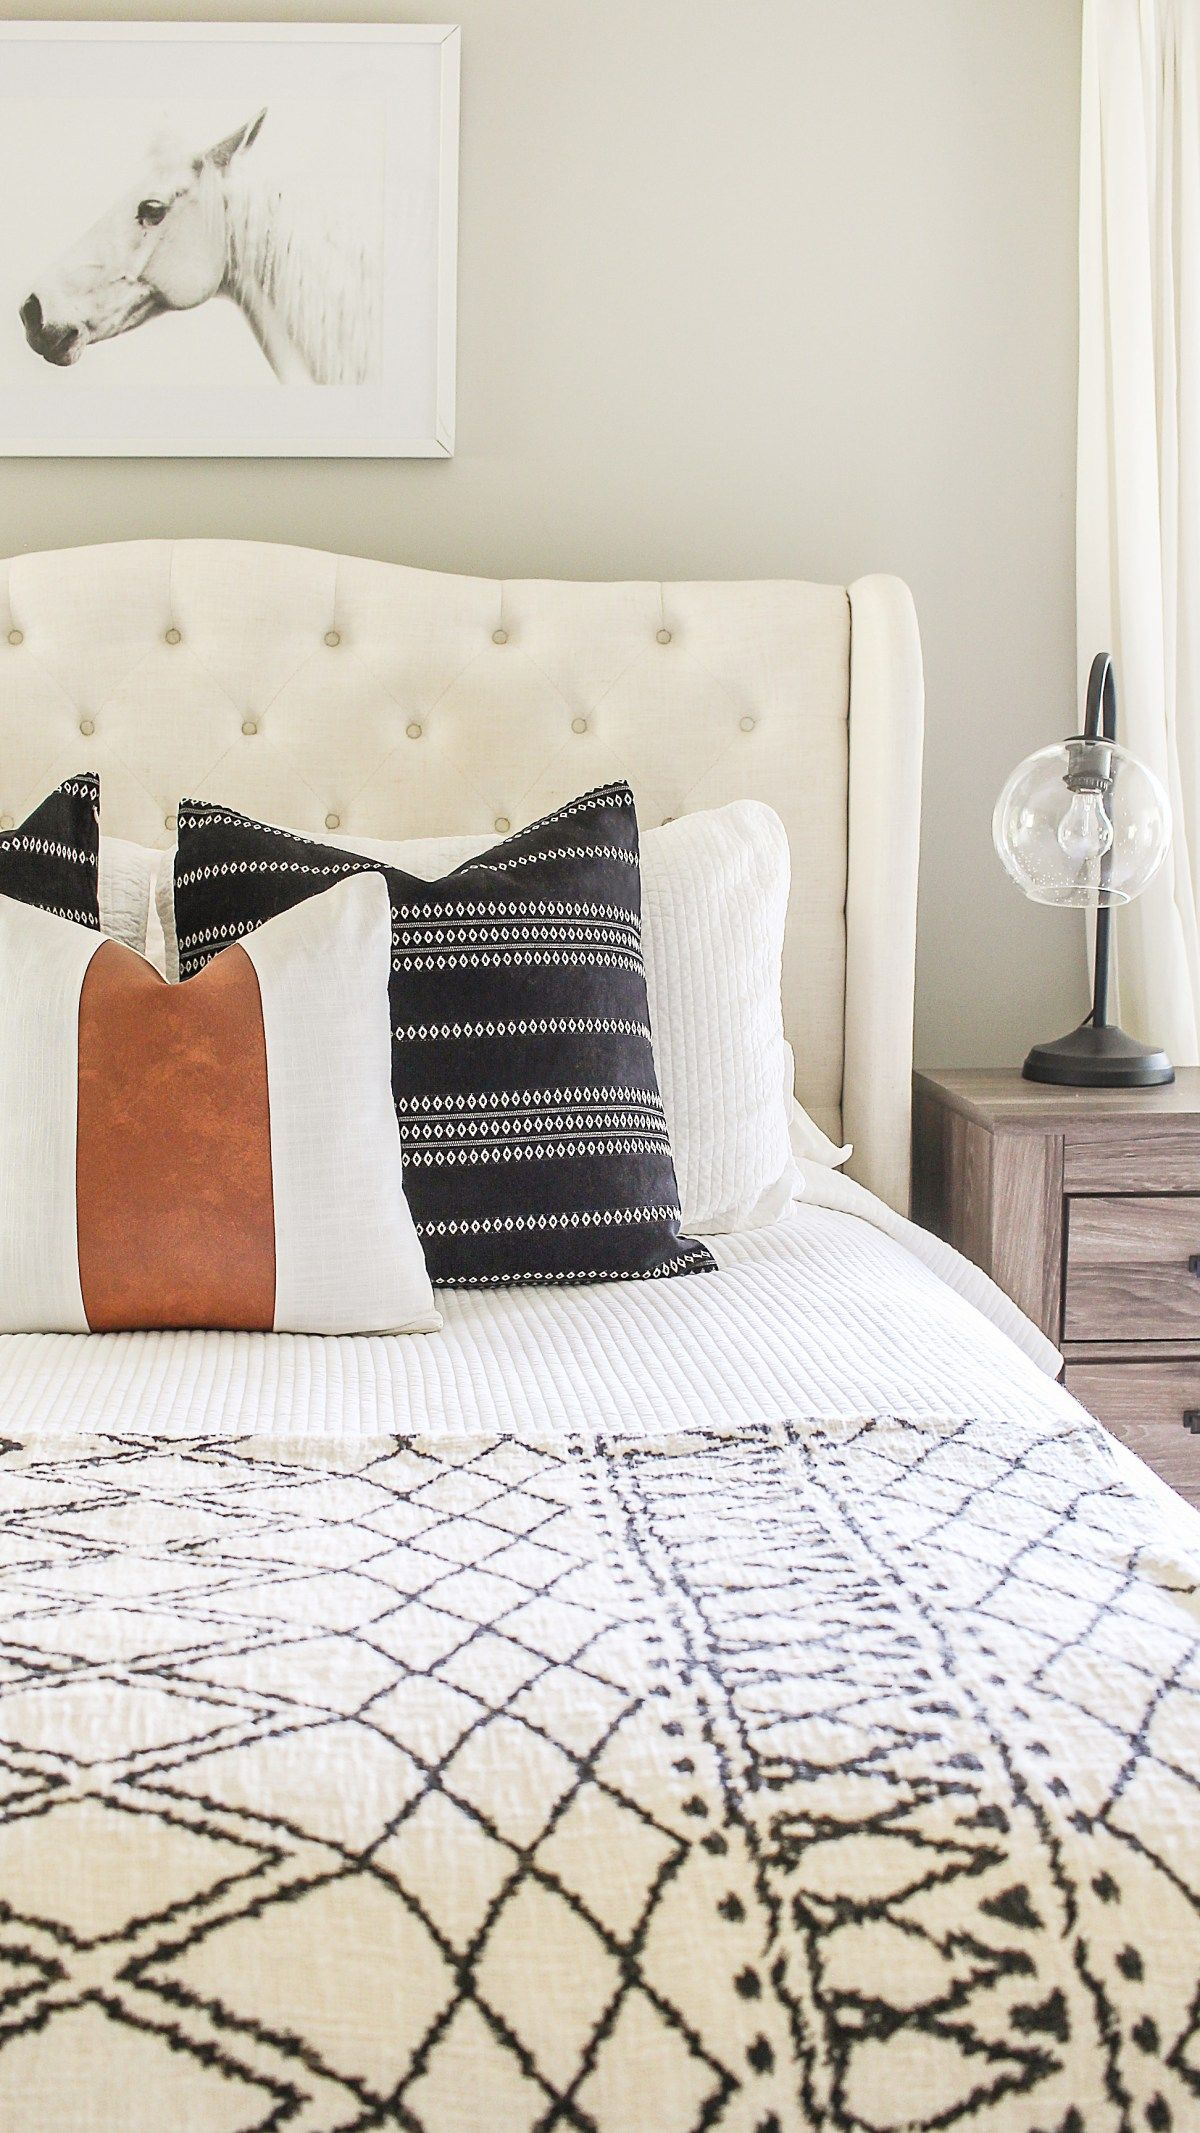 Modern Farmhouse Bedroom Refresh on a Budget #modernfarmhousebedroom